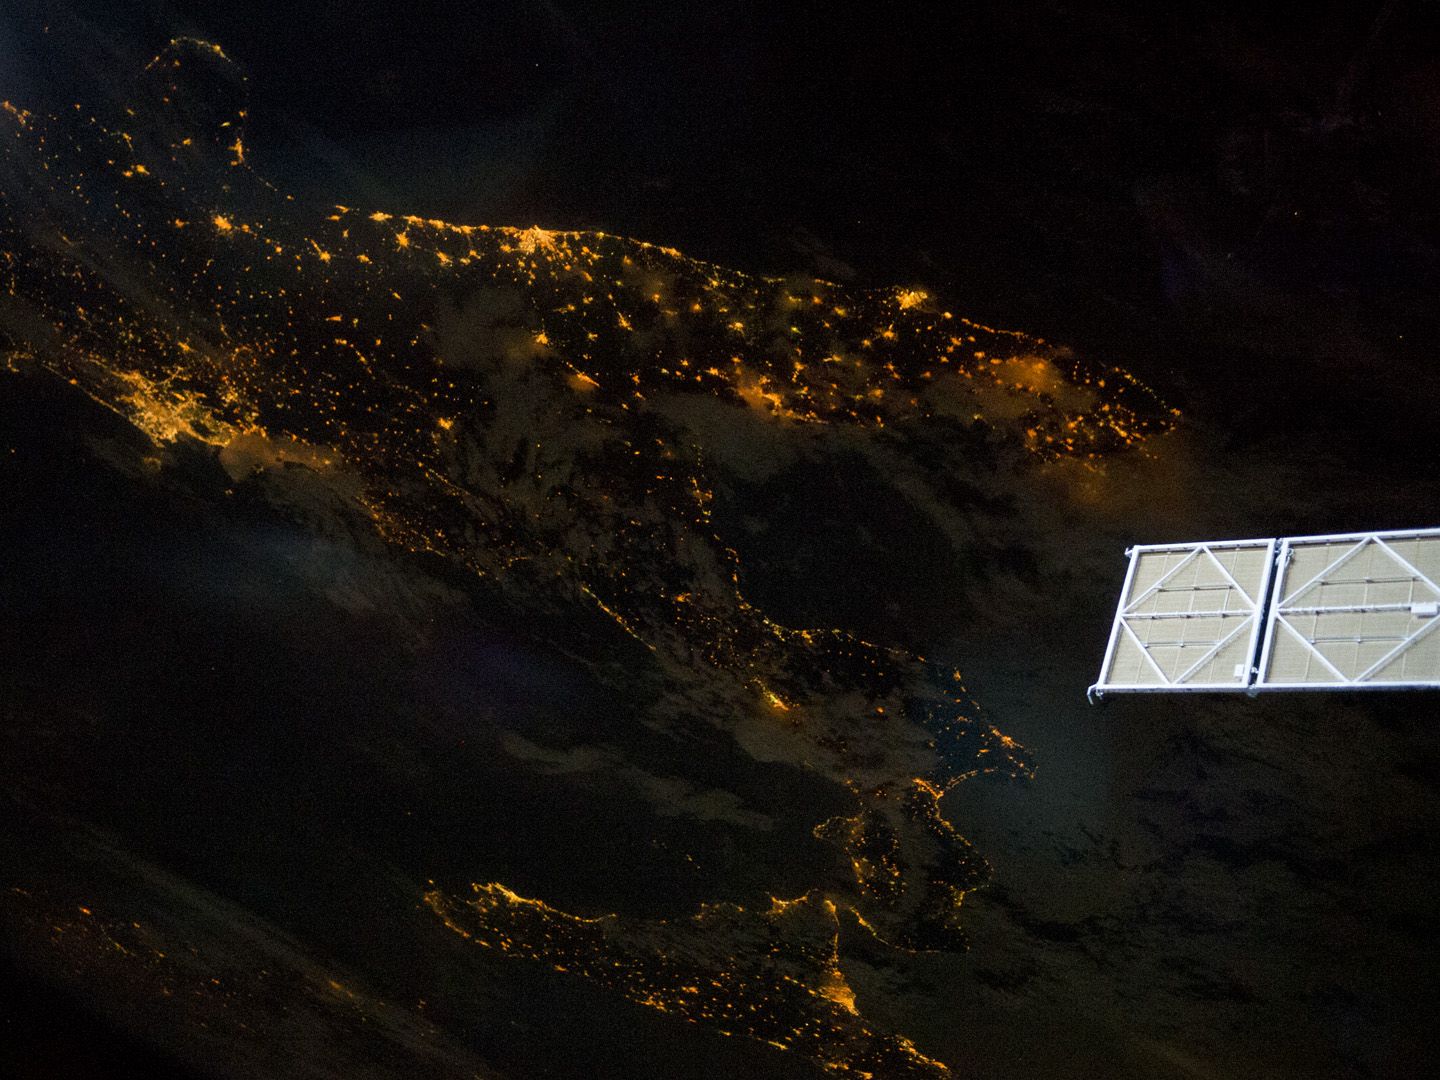 Today's Image of the Day comes thanks to the NASA Earth Observatory and features a look at the Italian Peninsula at night.